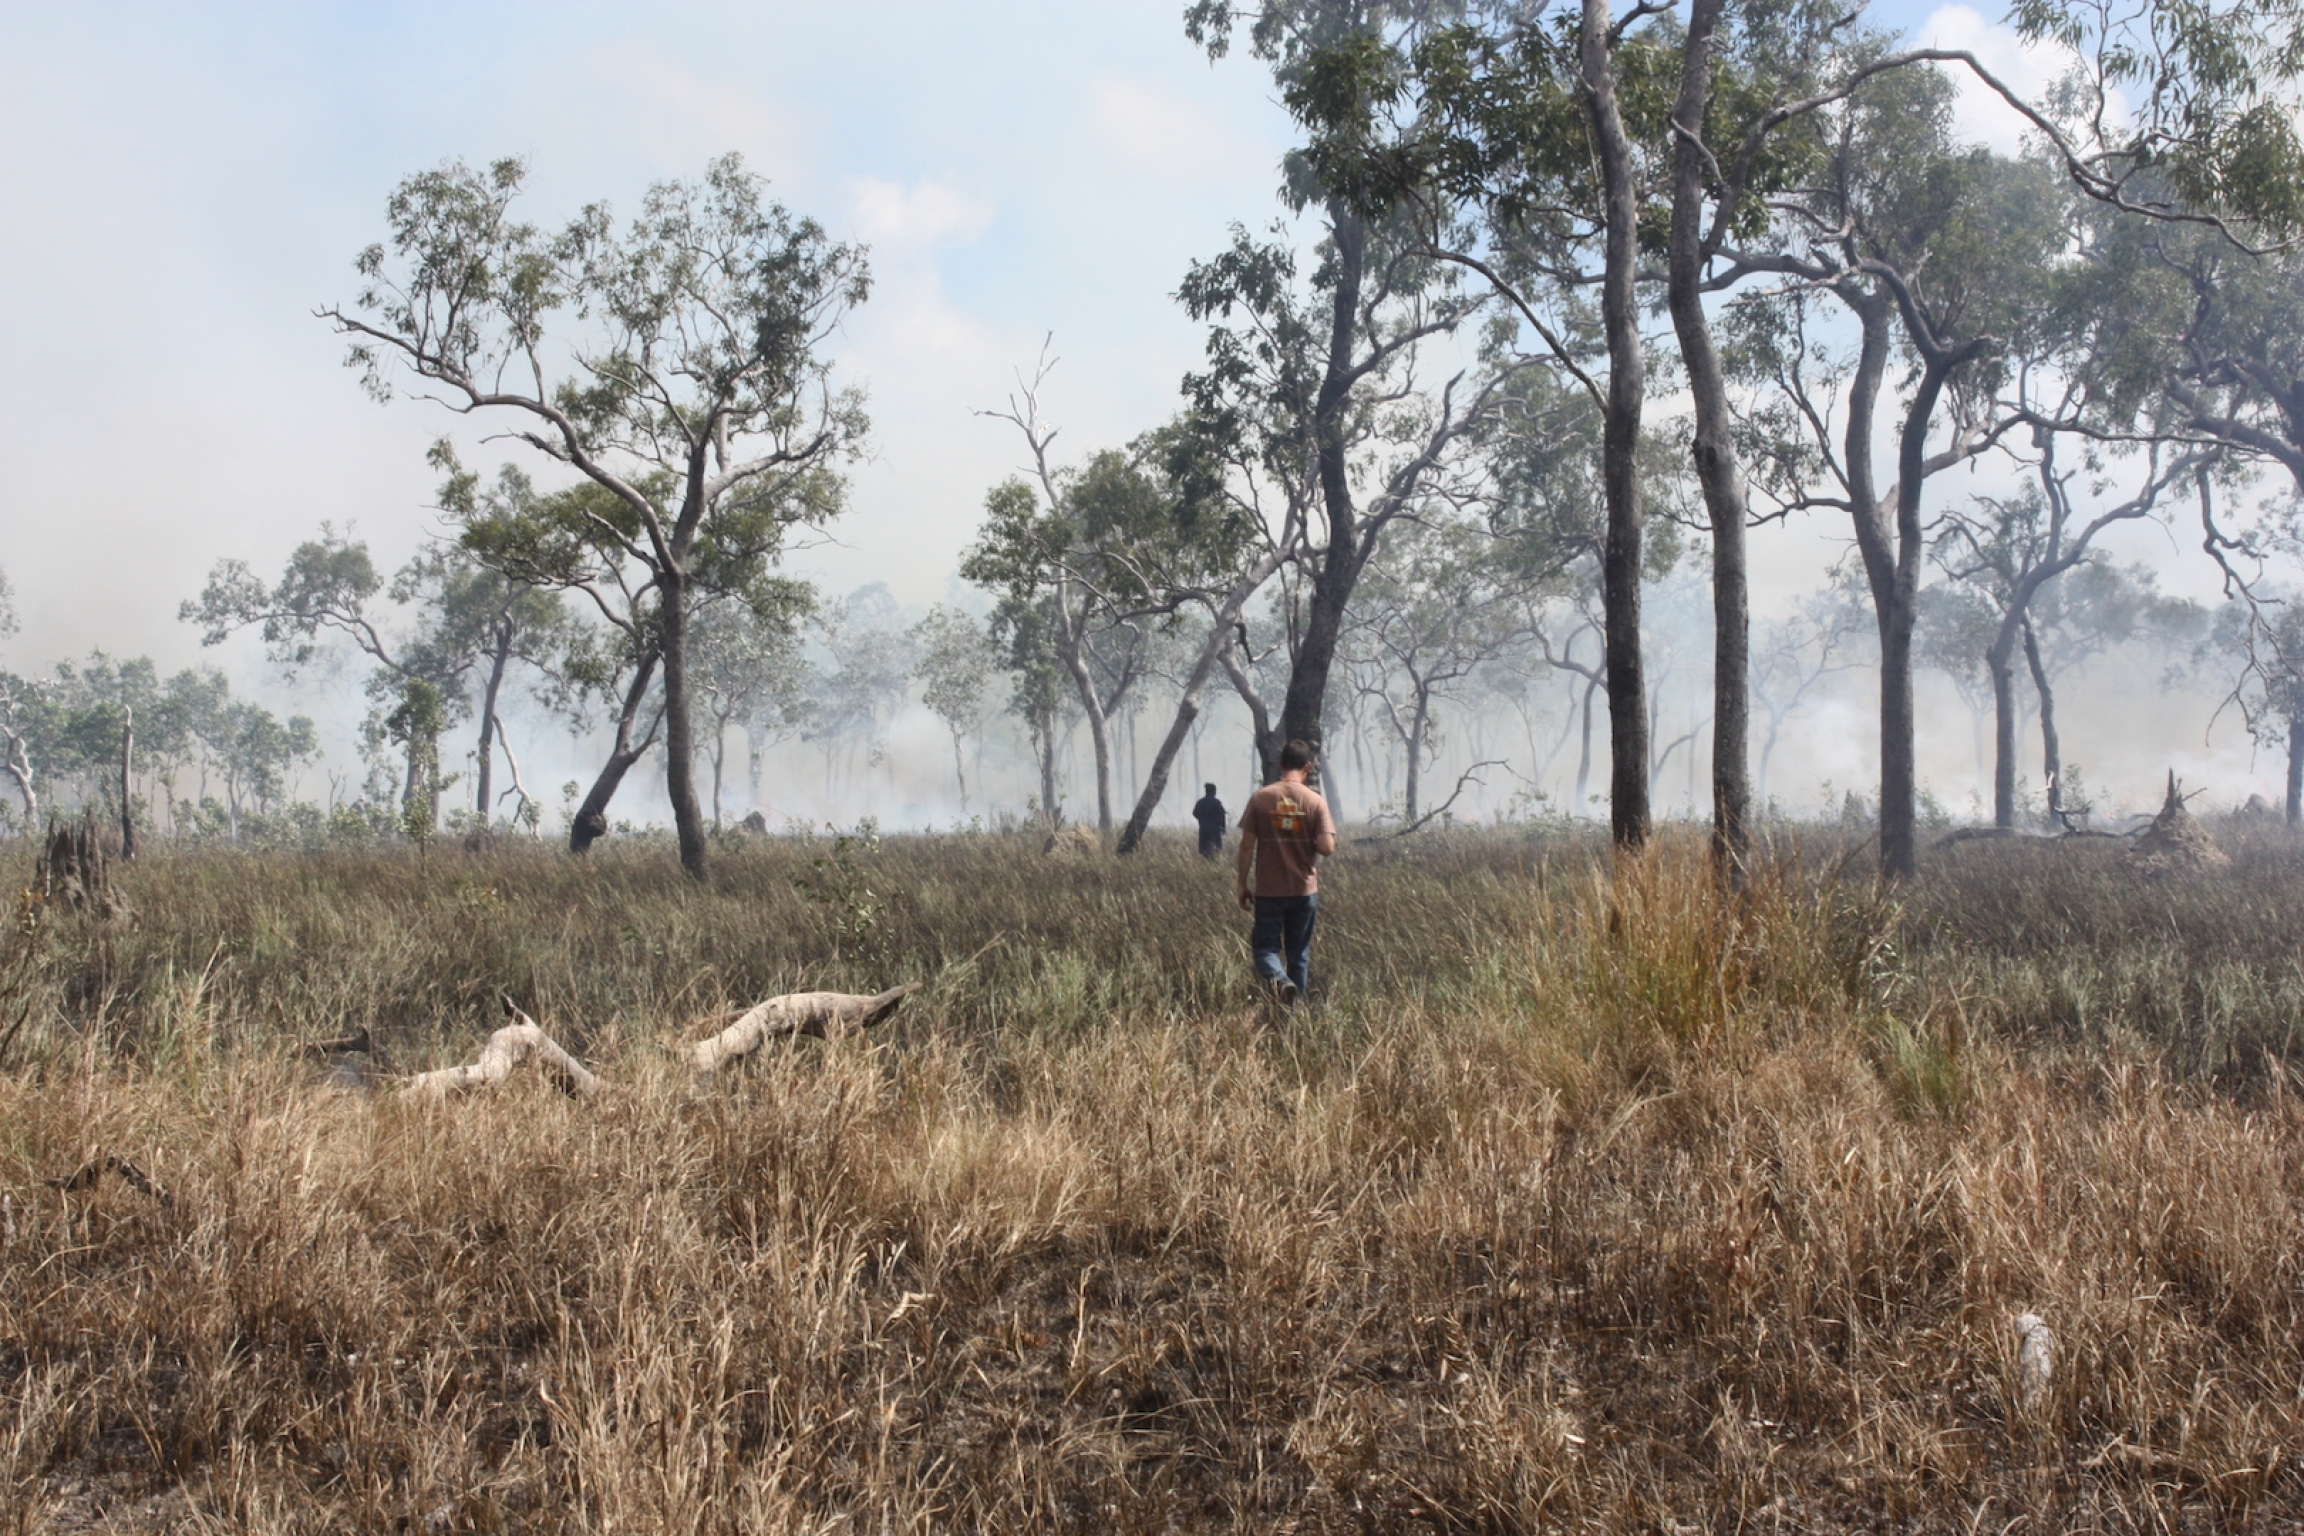 A man walks in dry patchy fields to set a controlled fire.